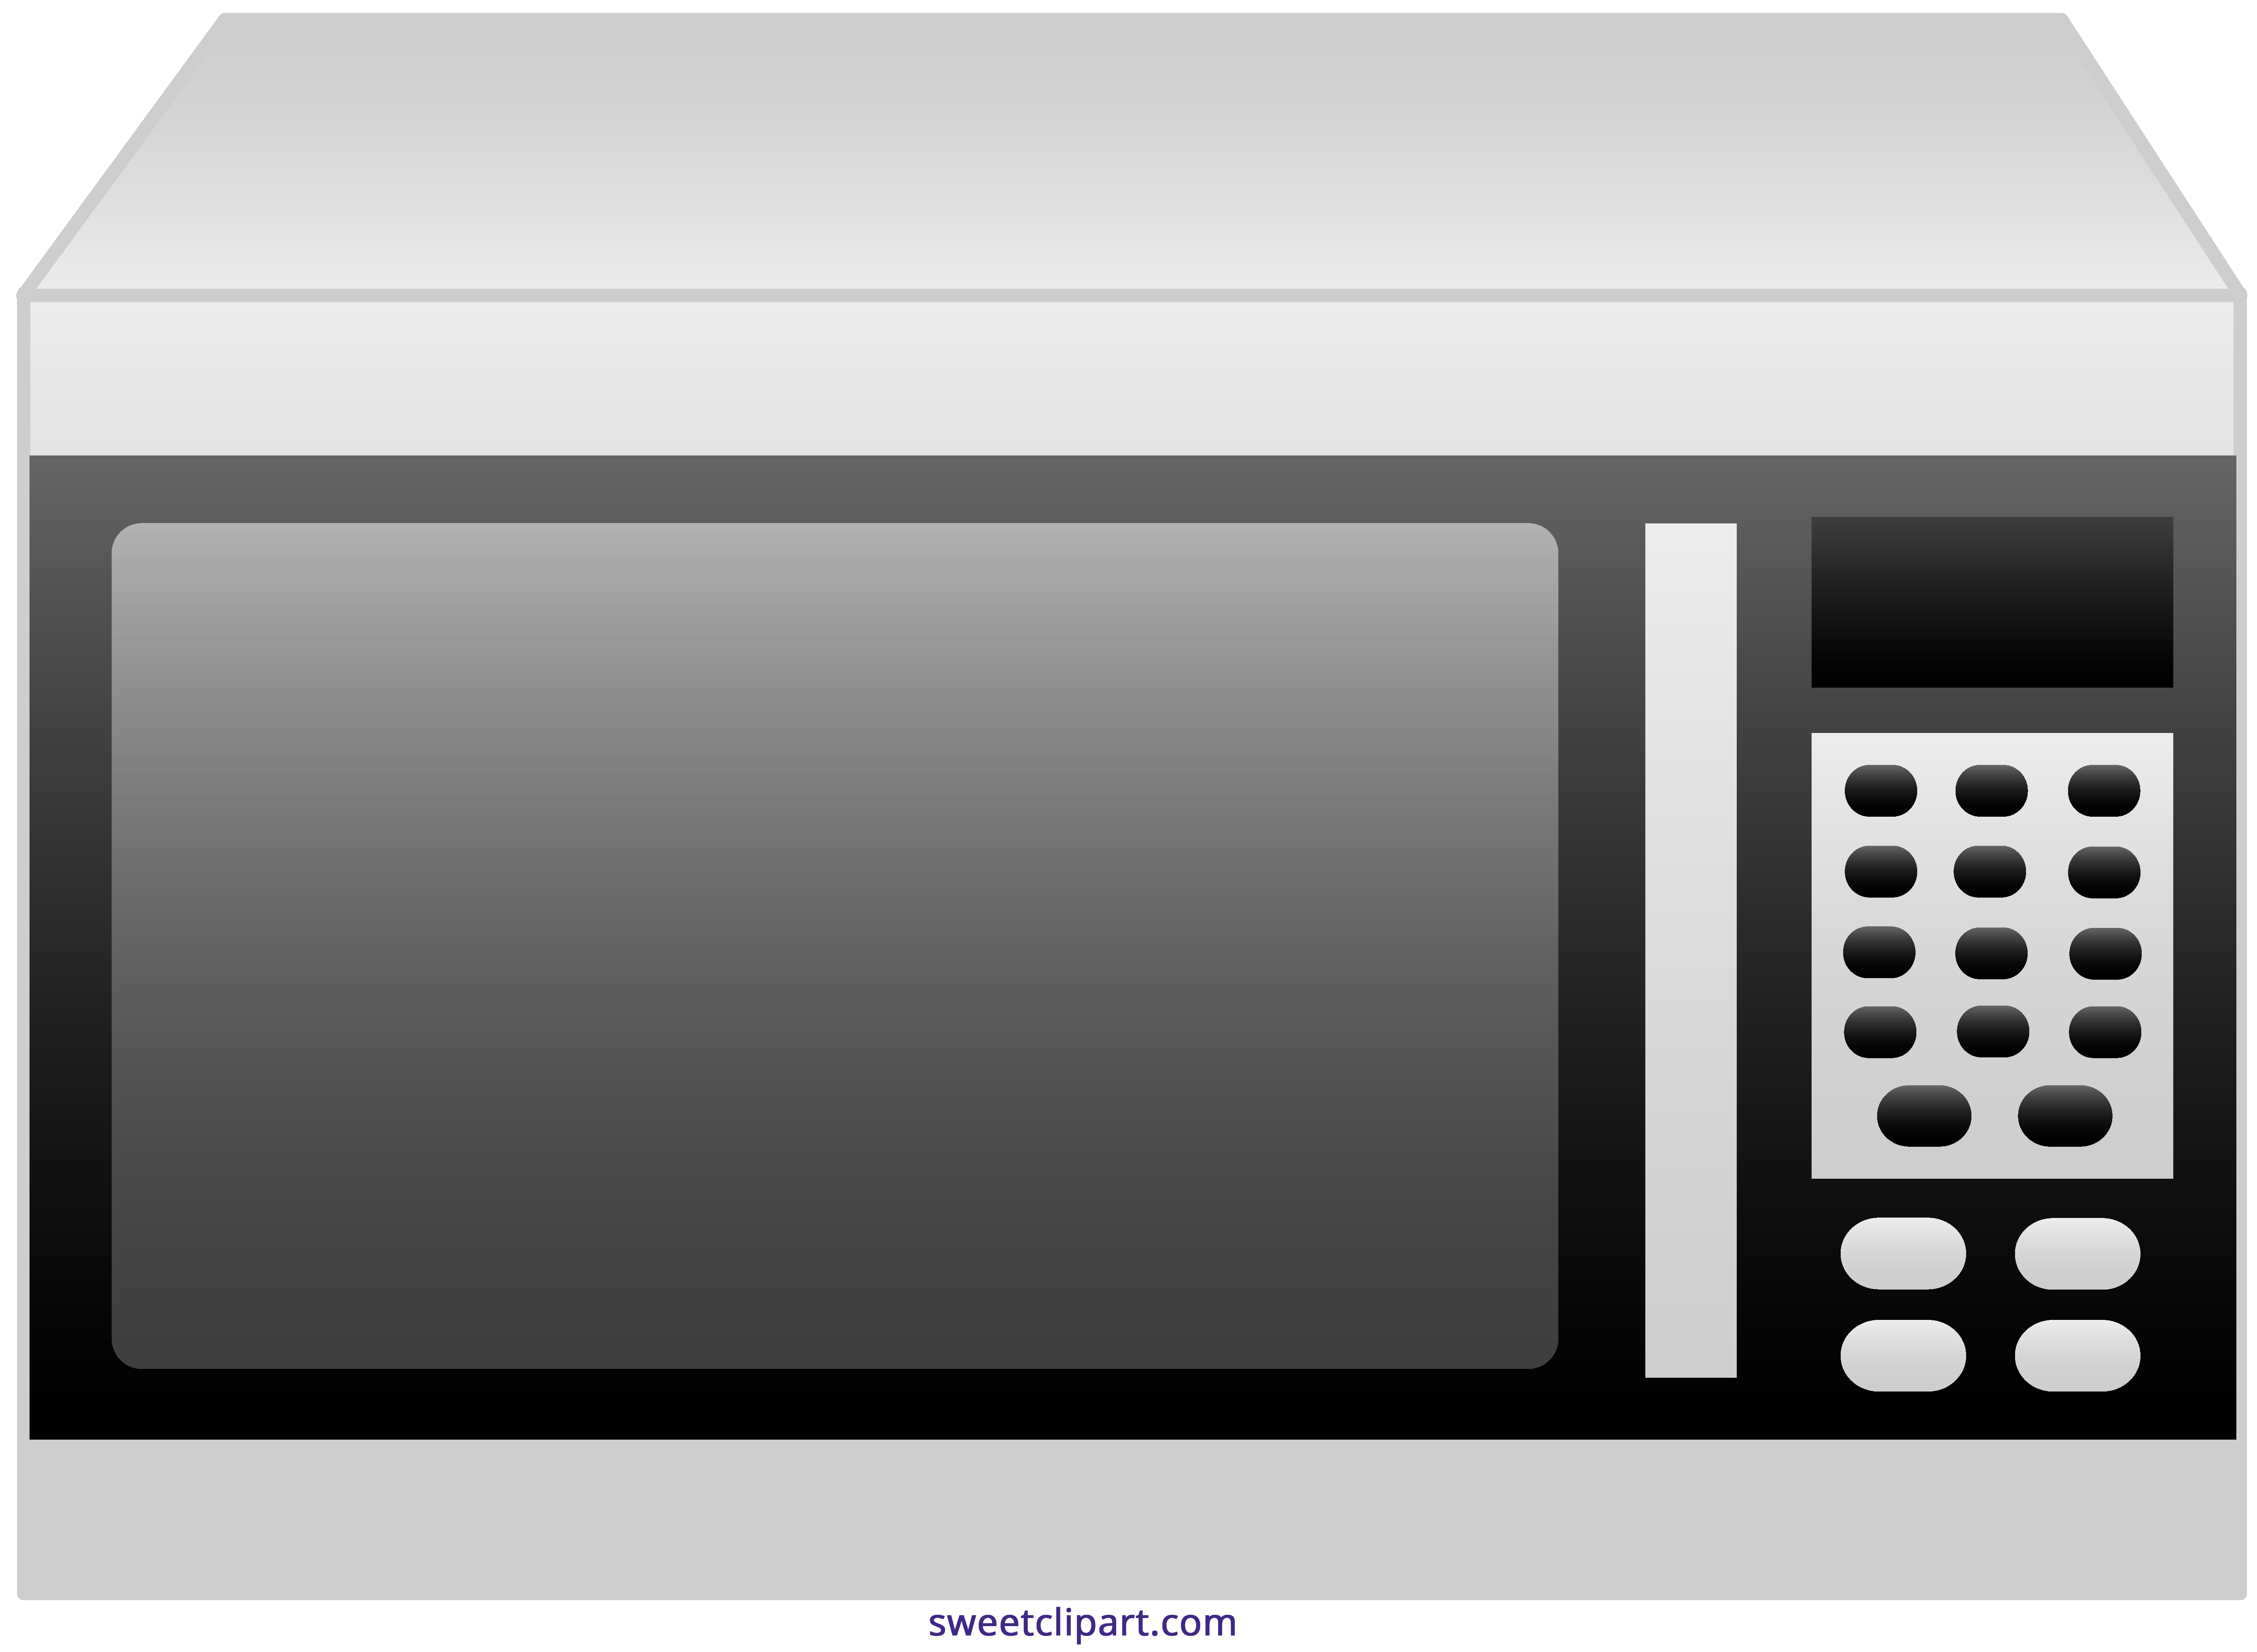 Clipart microwave oven png black and white download Microwave Oven Clipart - Sweet Clip Art png black and white download